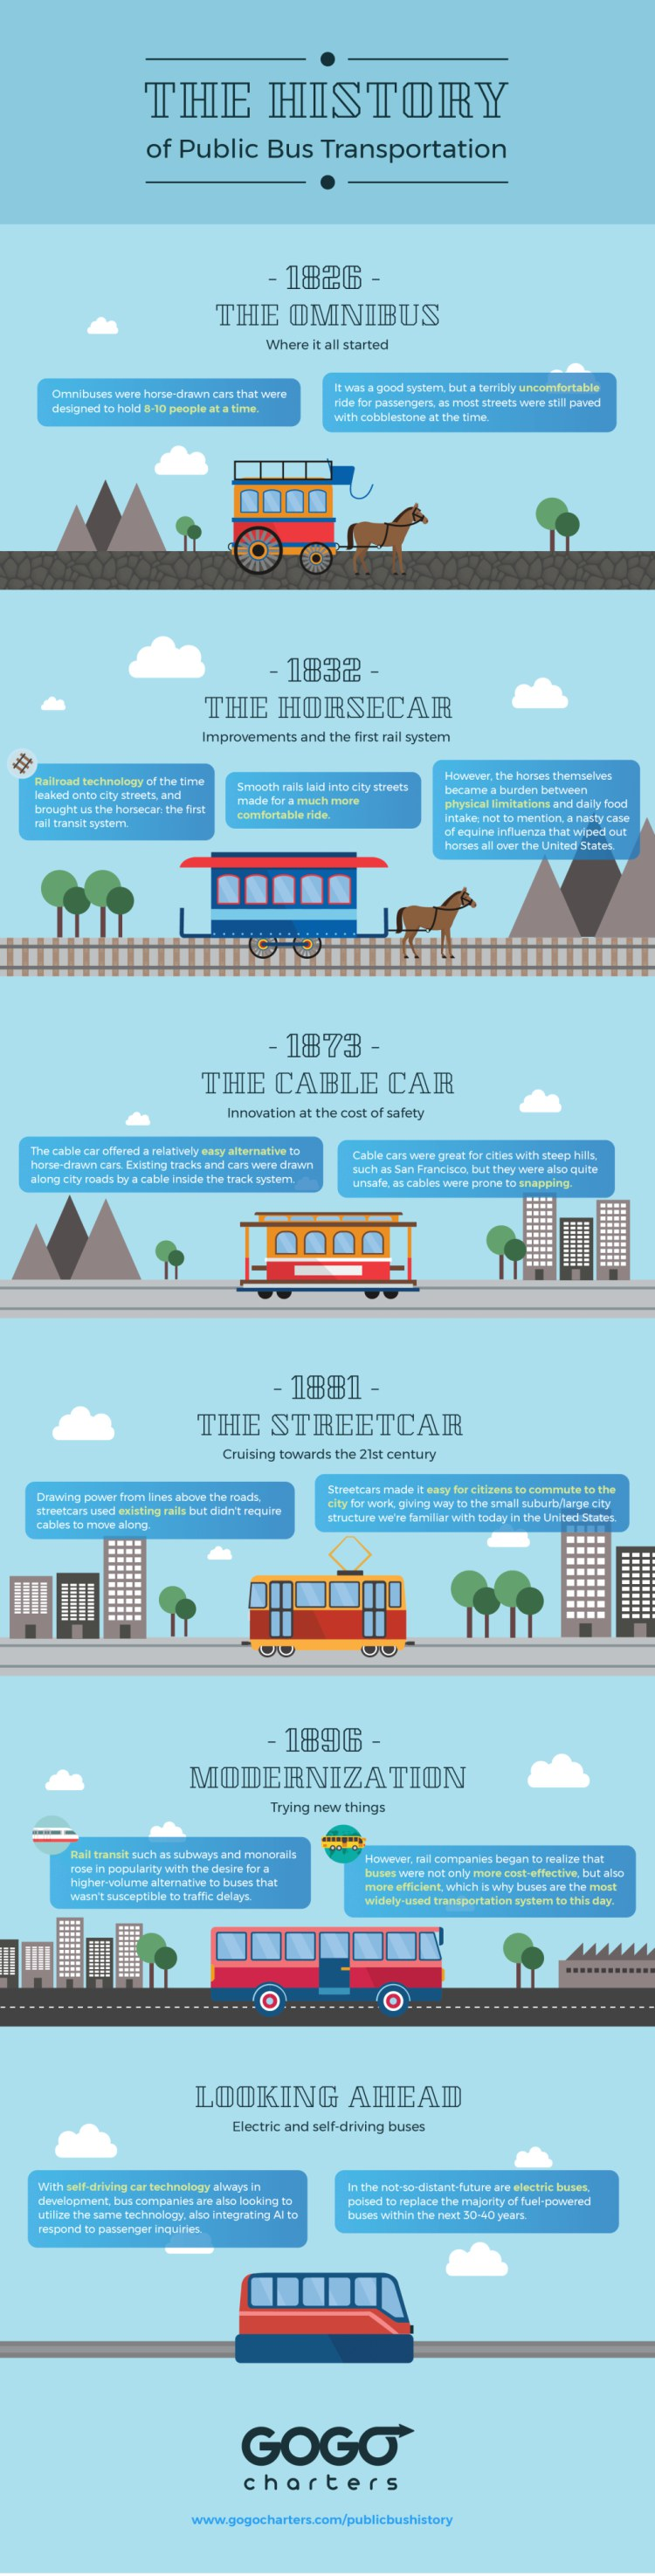 GOGO Charters - the history of public transportation infographic